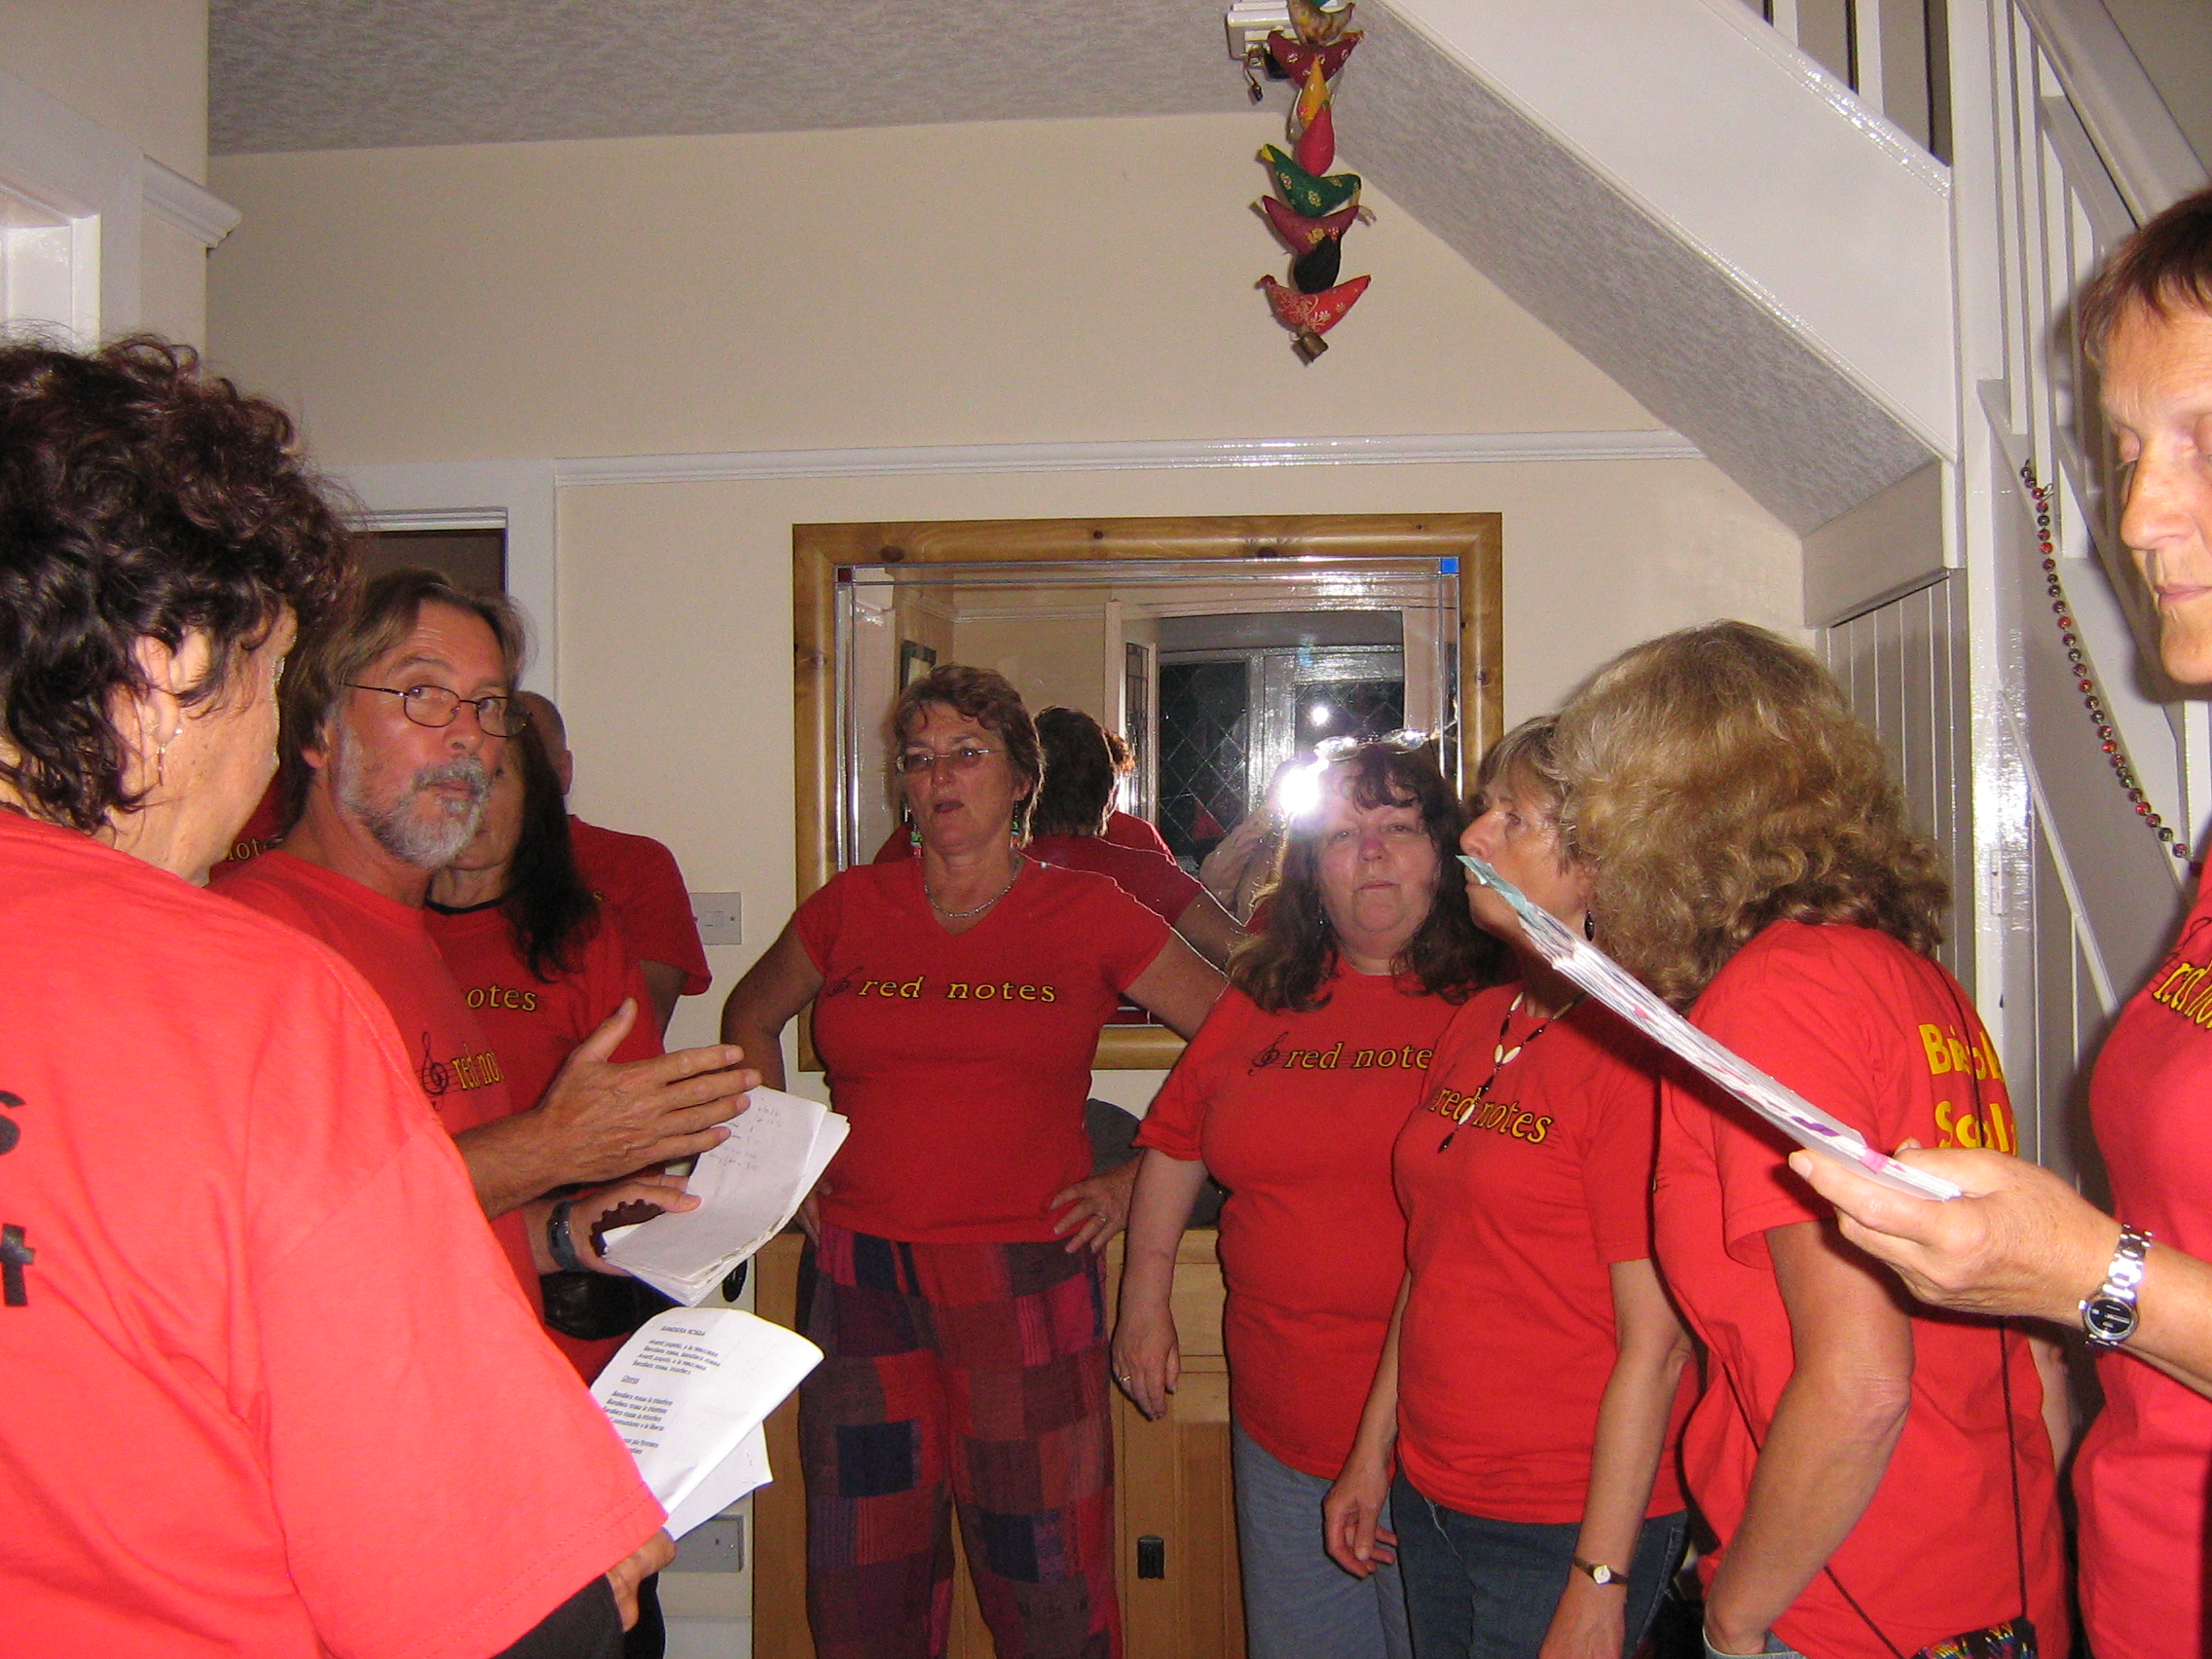 The Red Notes Choir from Bristol singing for us